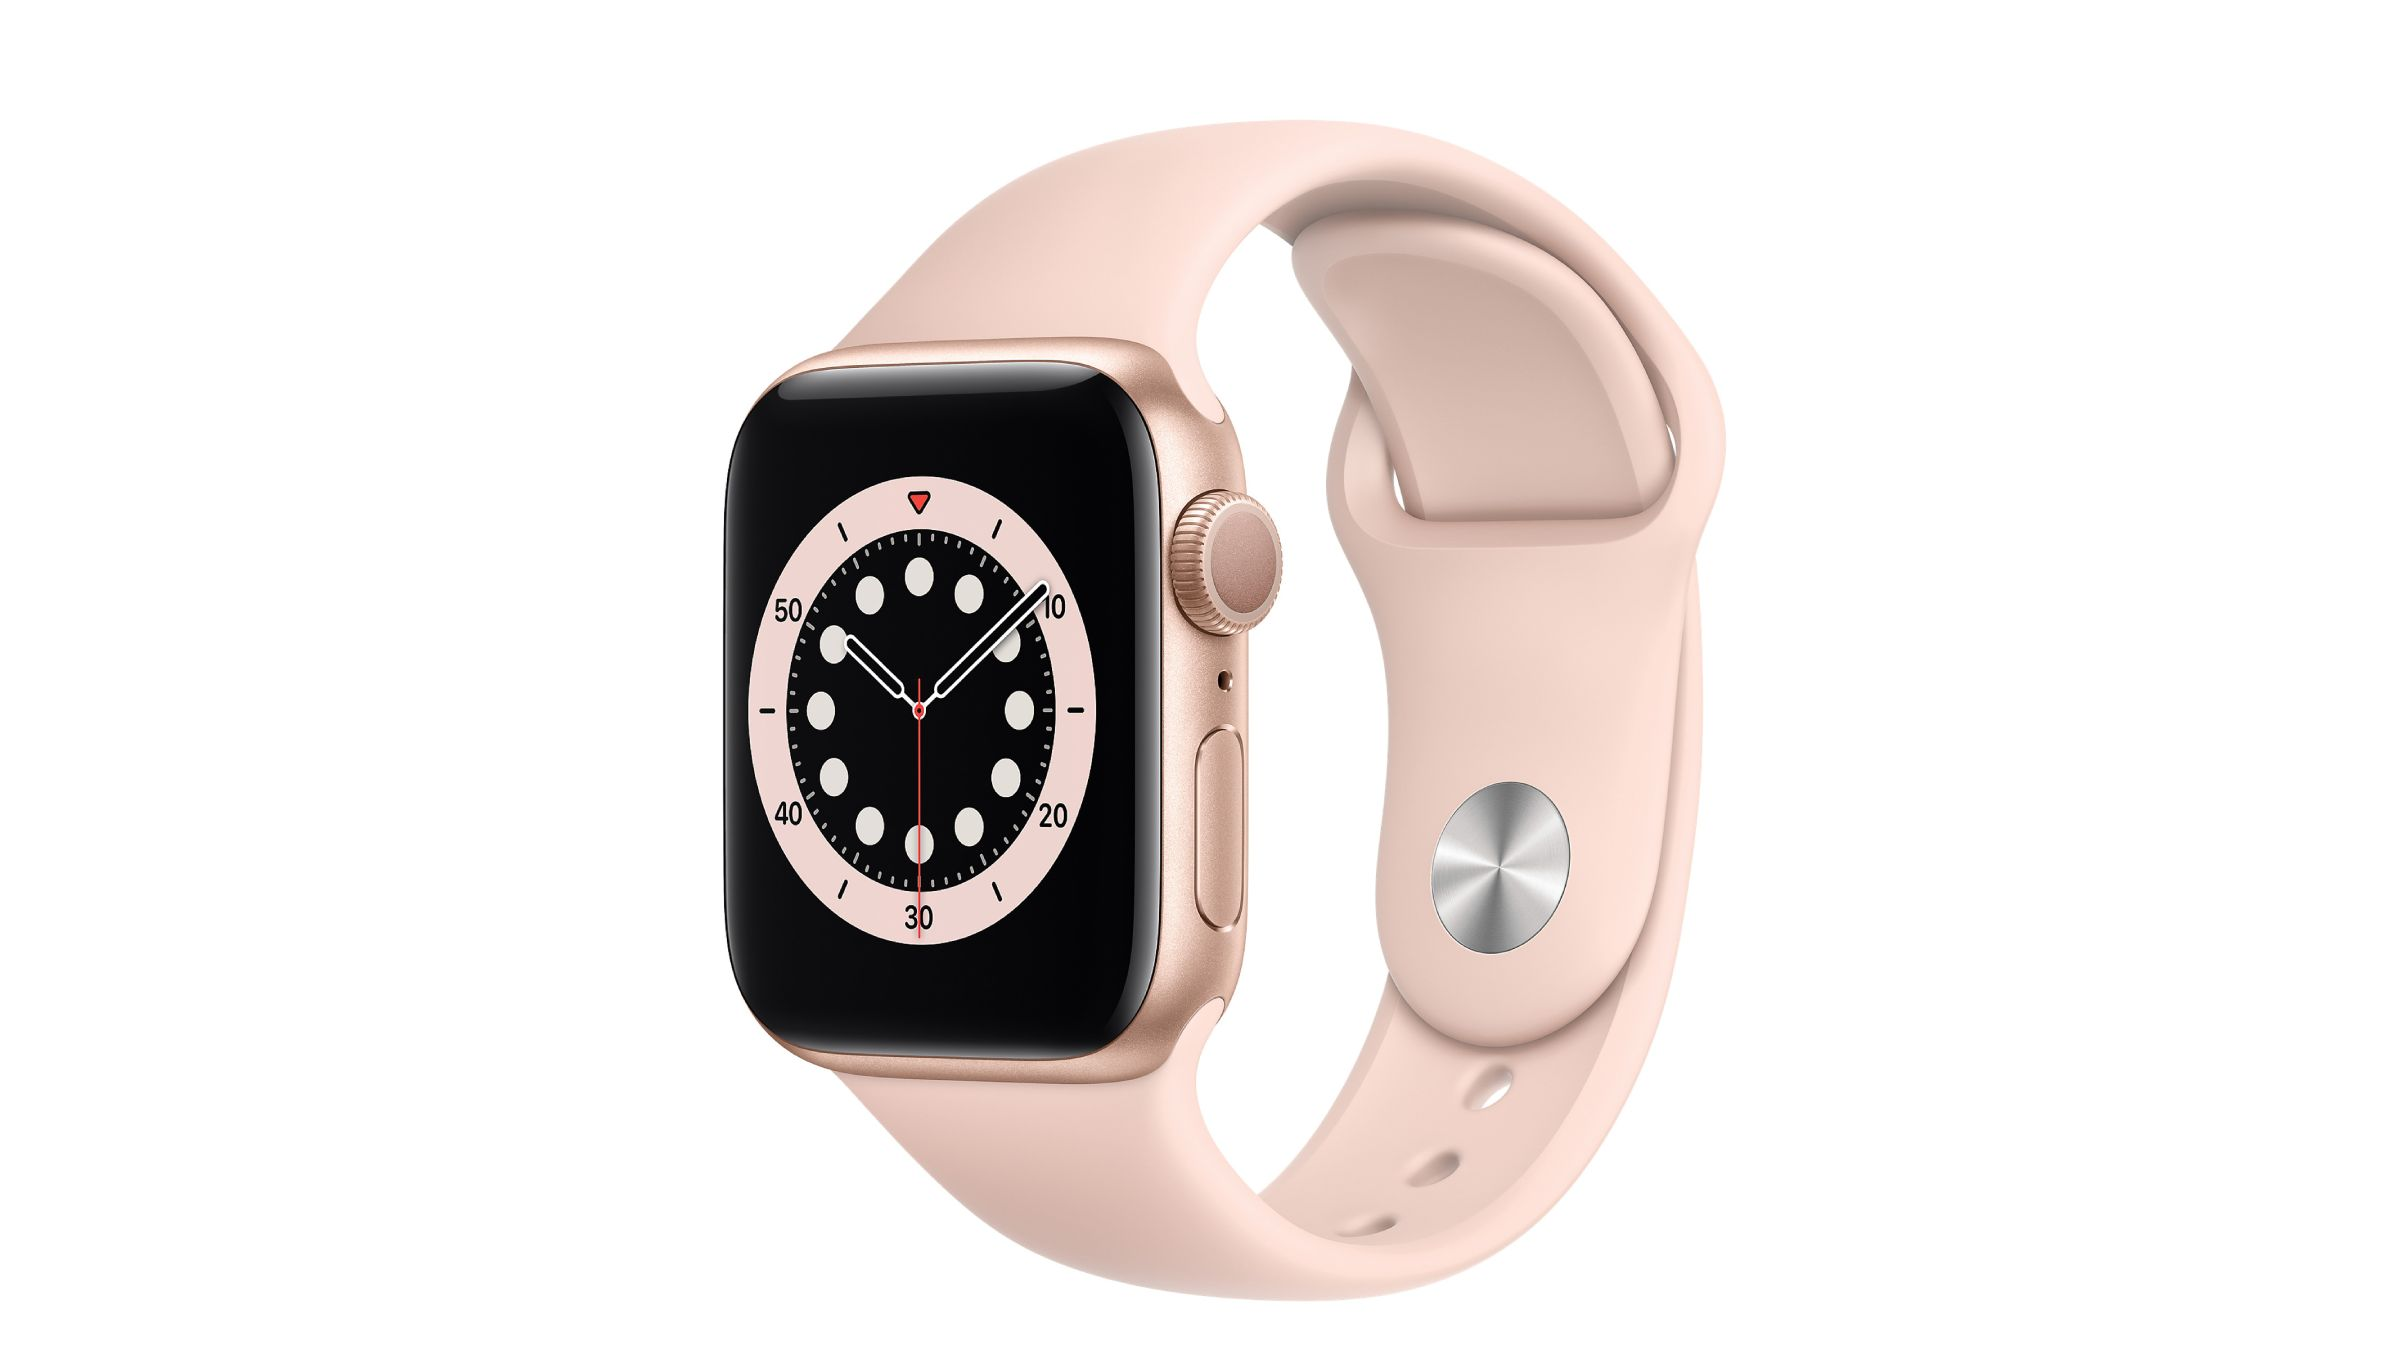 Series 6 Apple Watch smartwatch